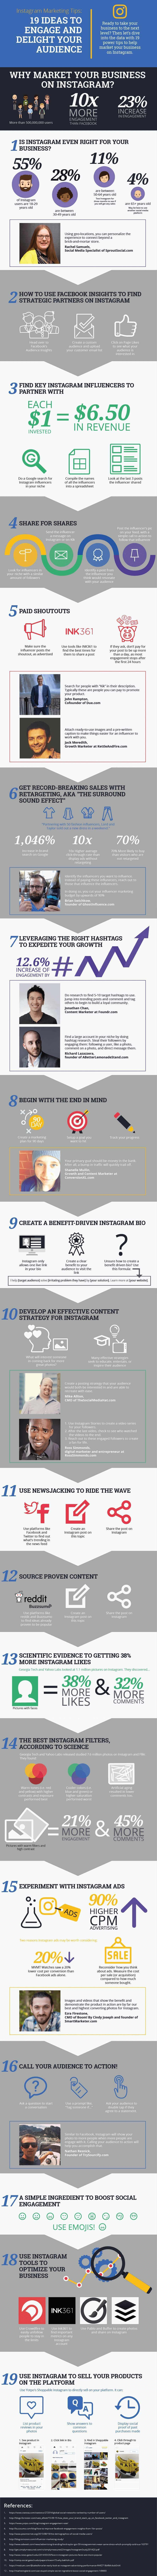 How To Find Your Linkedin Page S Engagement Rate Linkedin Page Instagram Engagement Social Media